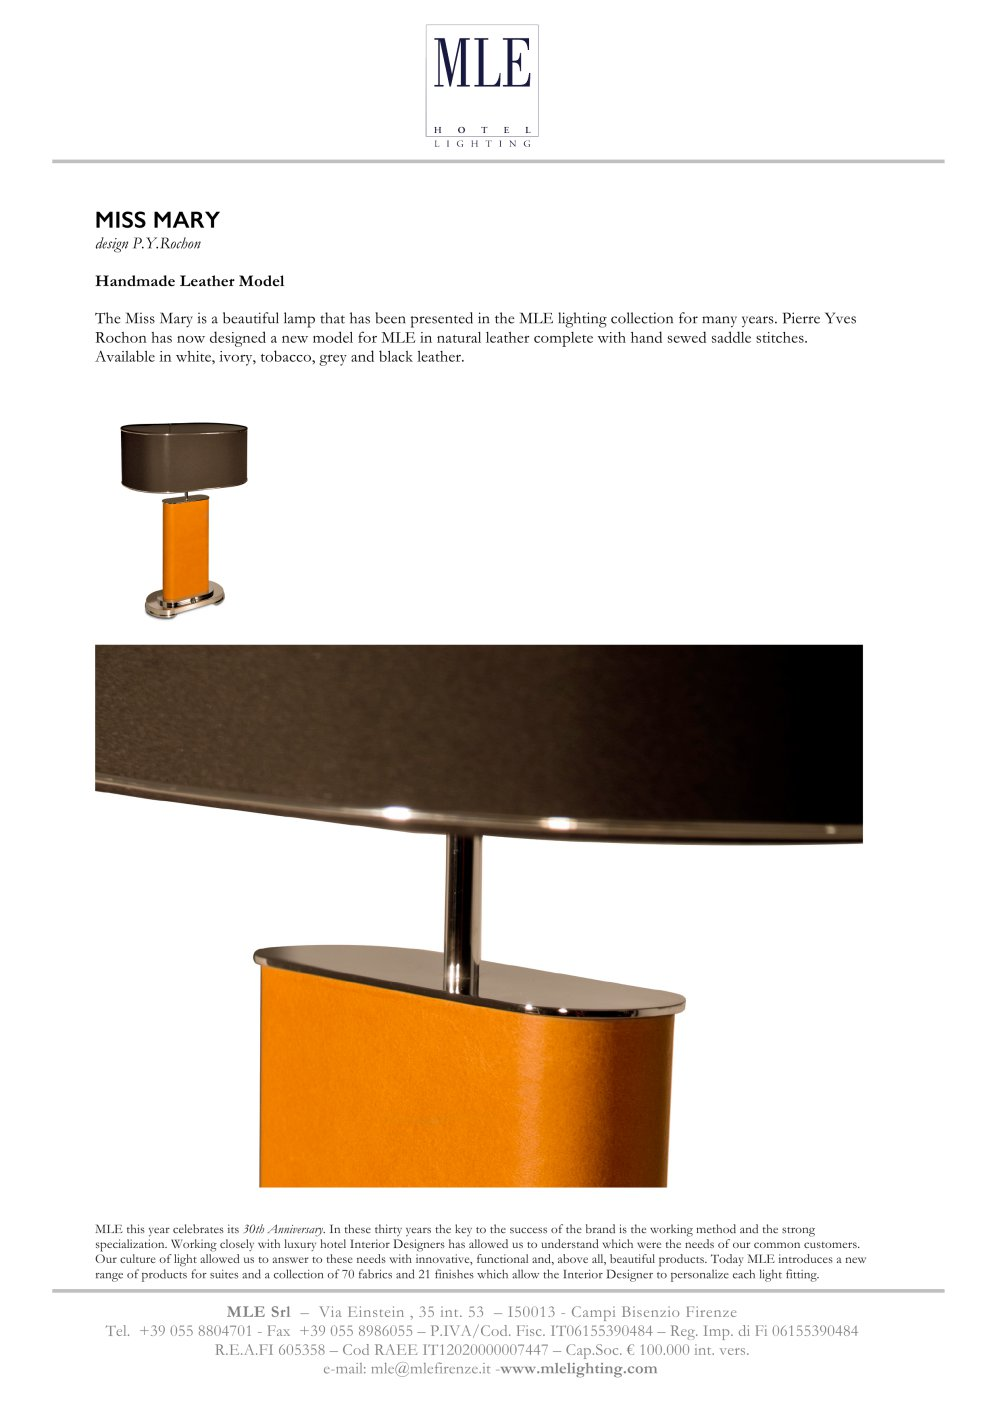 SLEEP 2014 - 1 / 12 Pages  sc 1 st  Catalogues Archiexpo & SLEEP 2014 - MLE HOTEL LIGHTING - PDF Catalogues | Documentation ... azcodes.com